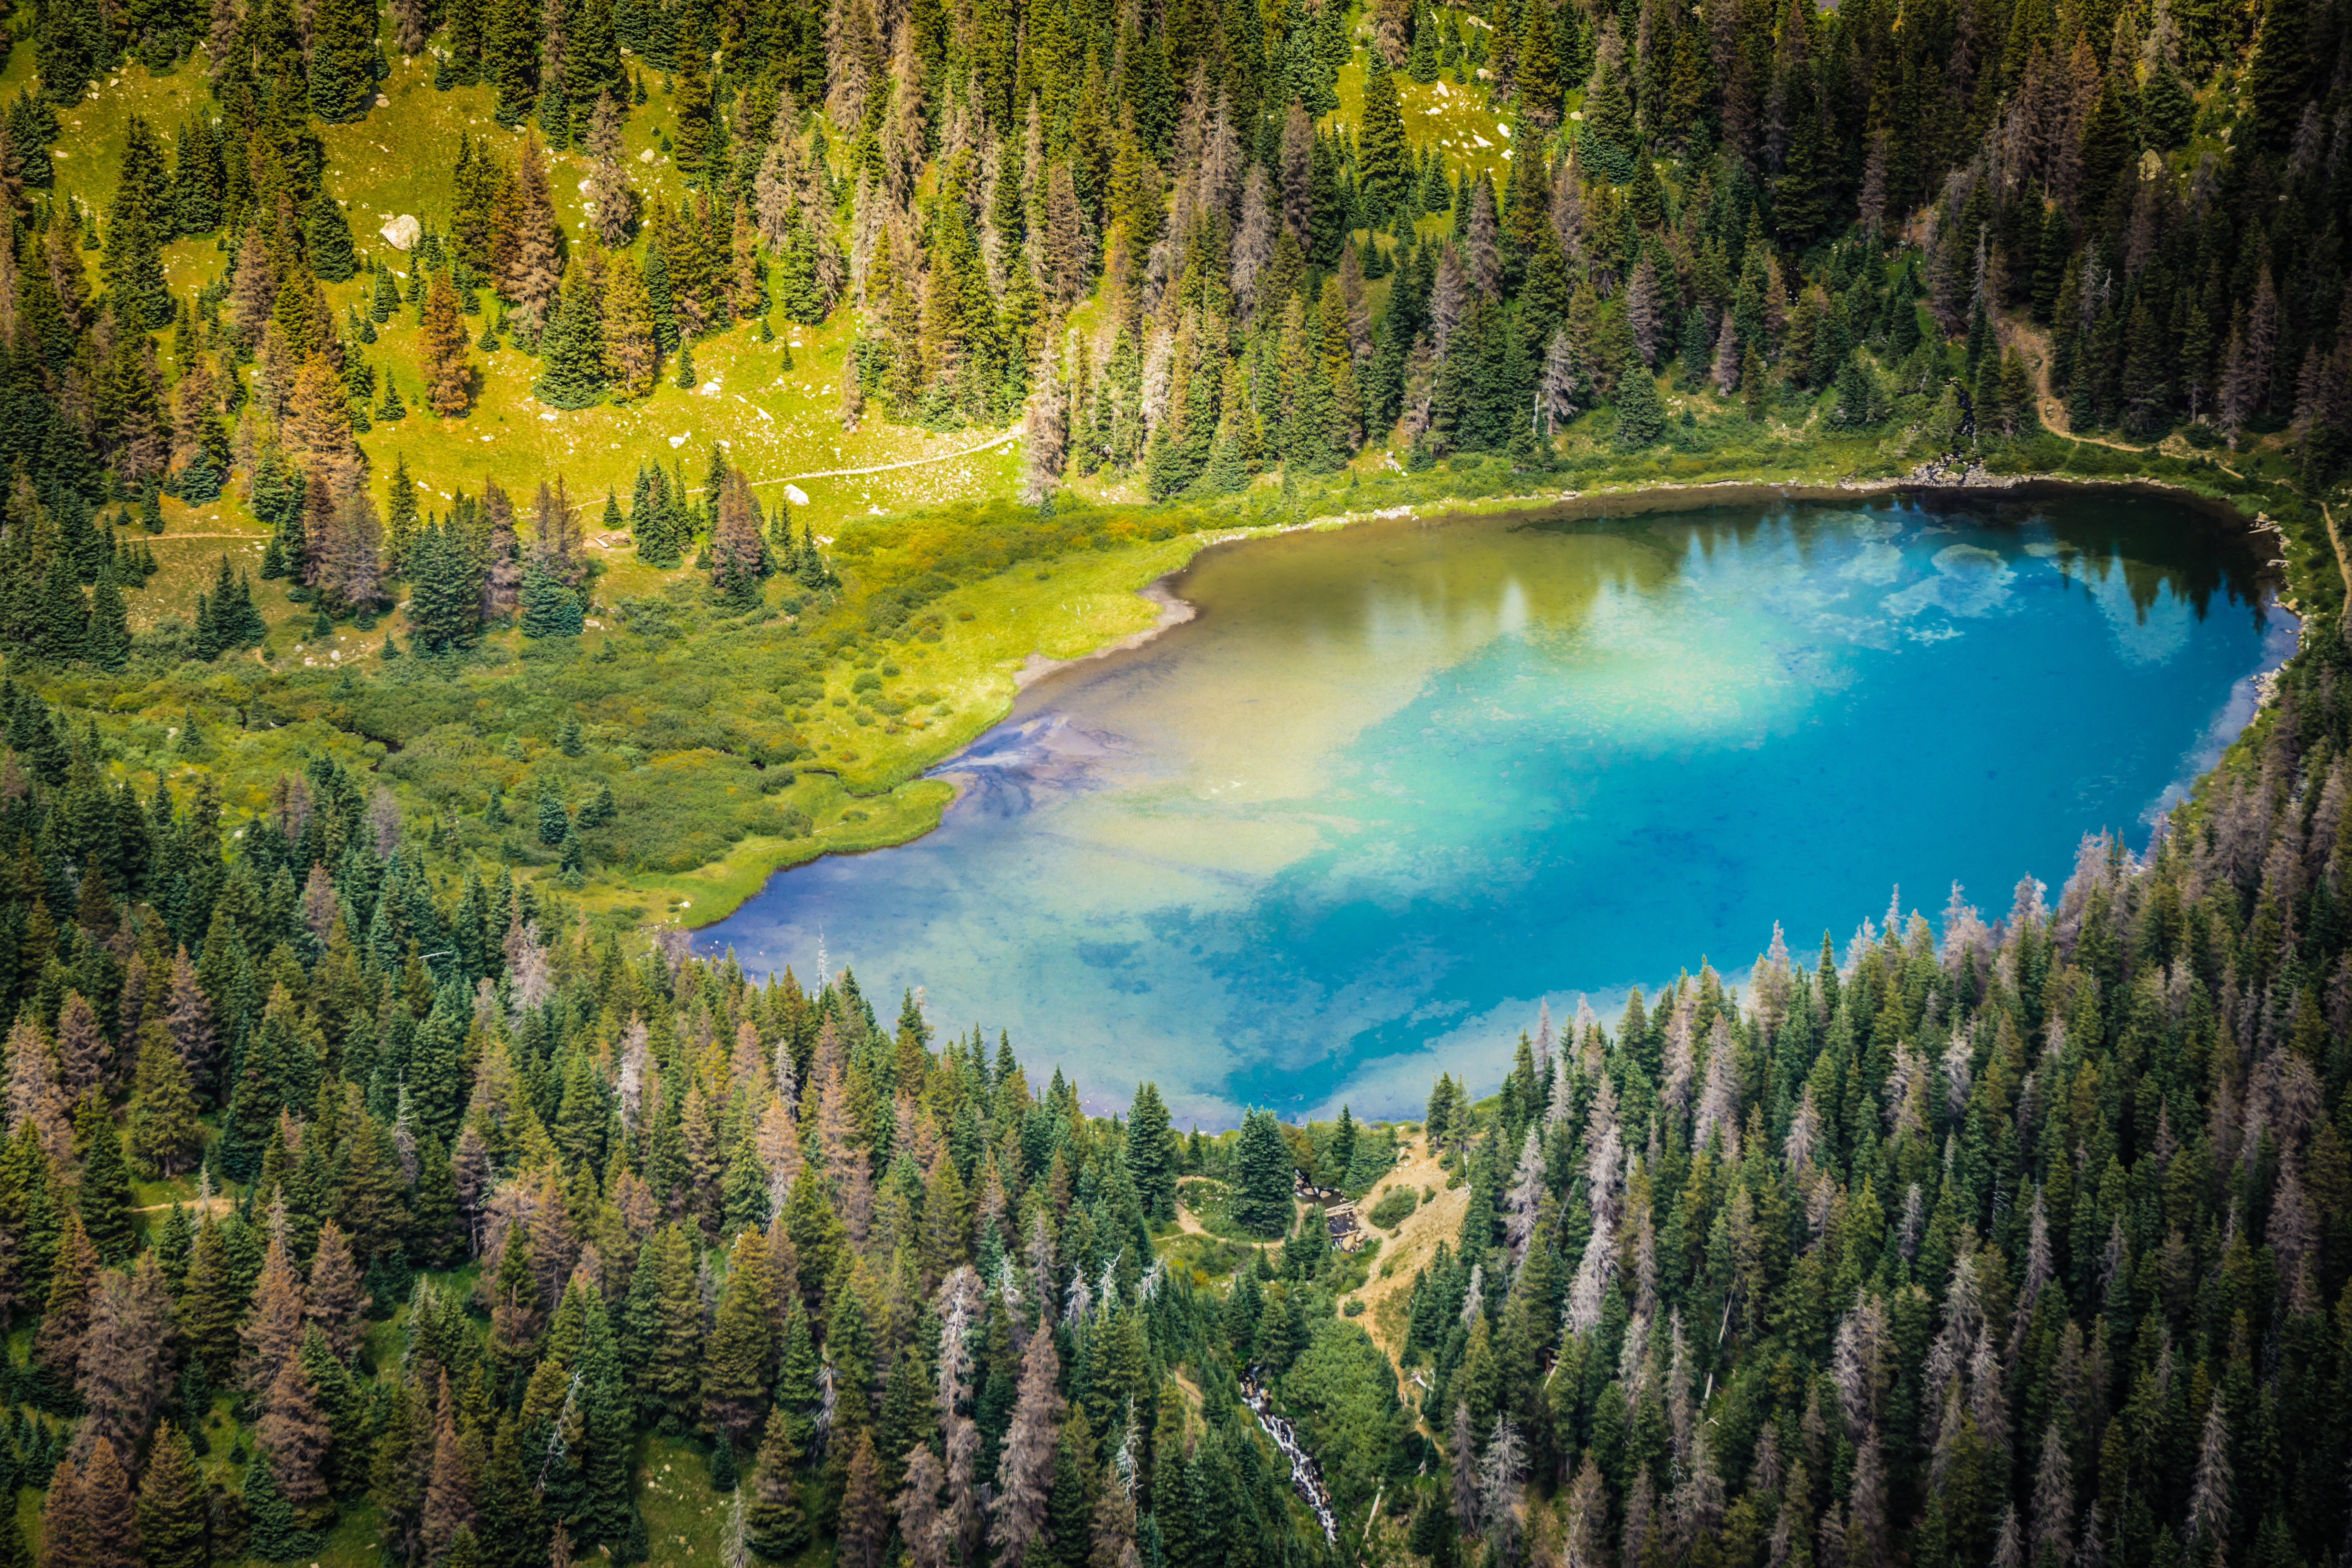 A colorful lake surrounded by green forests on a sunny day